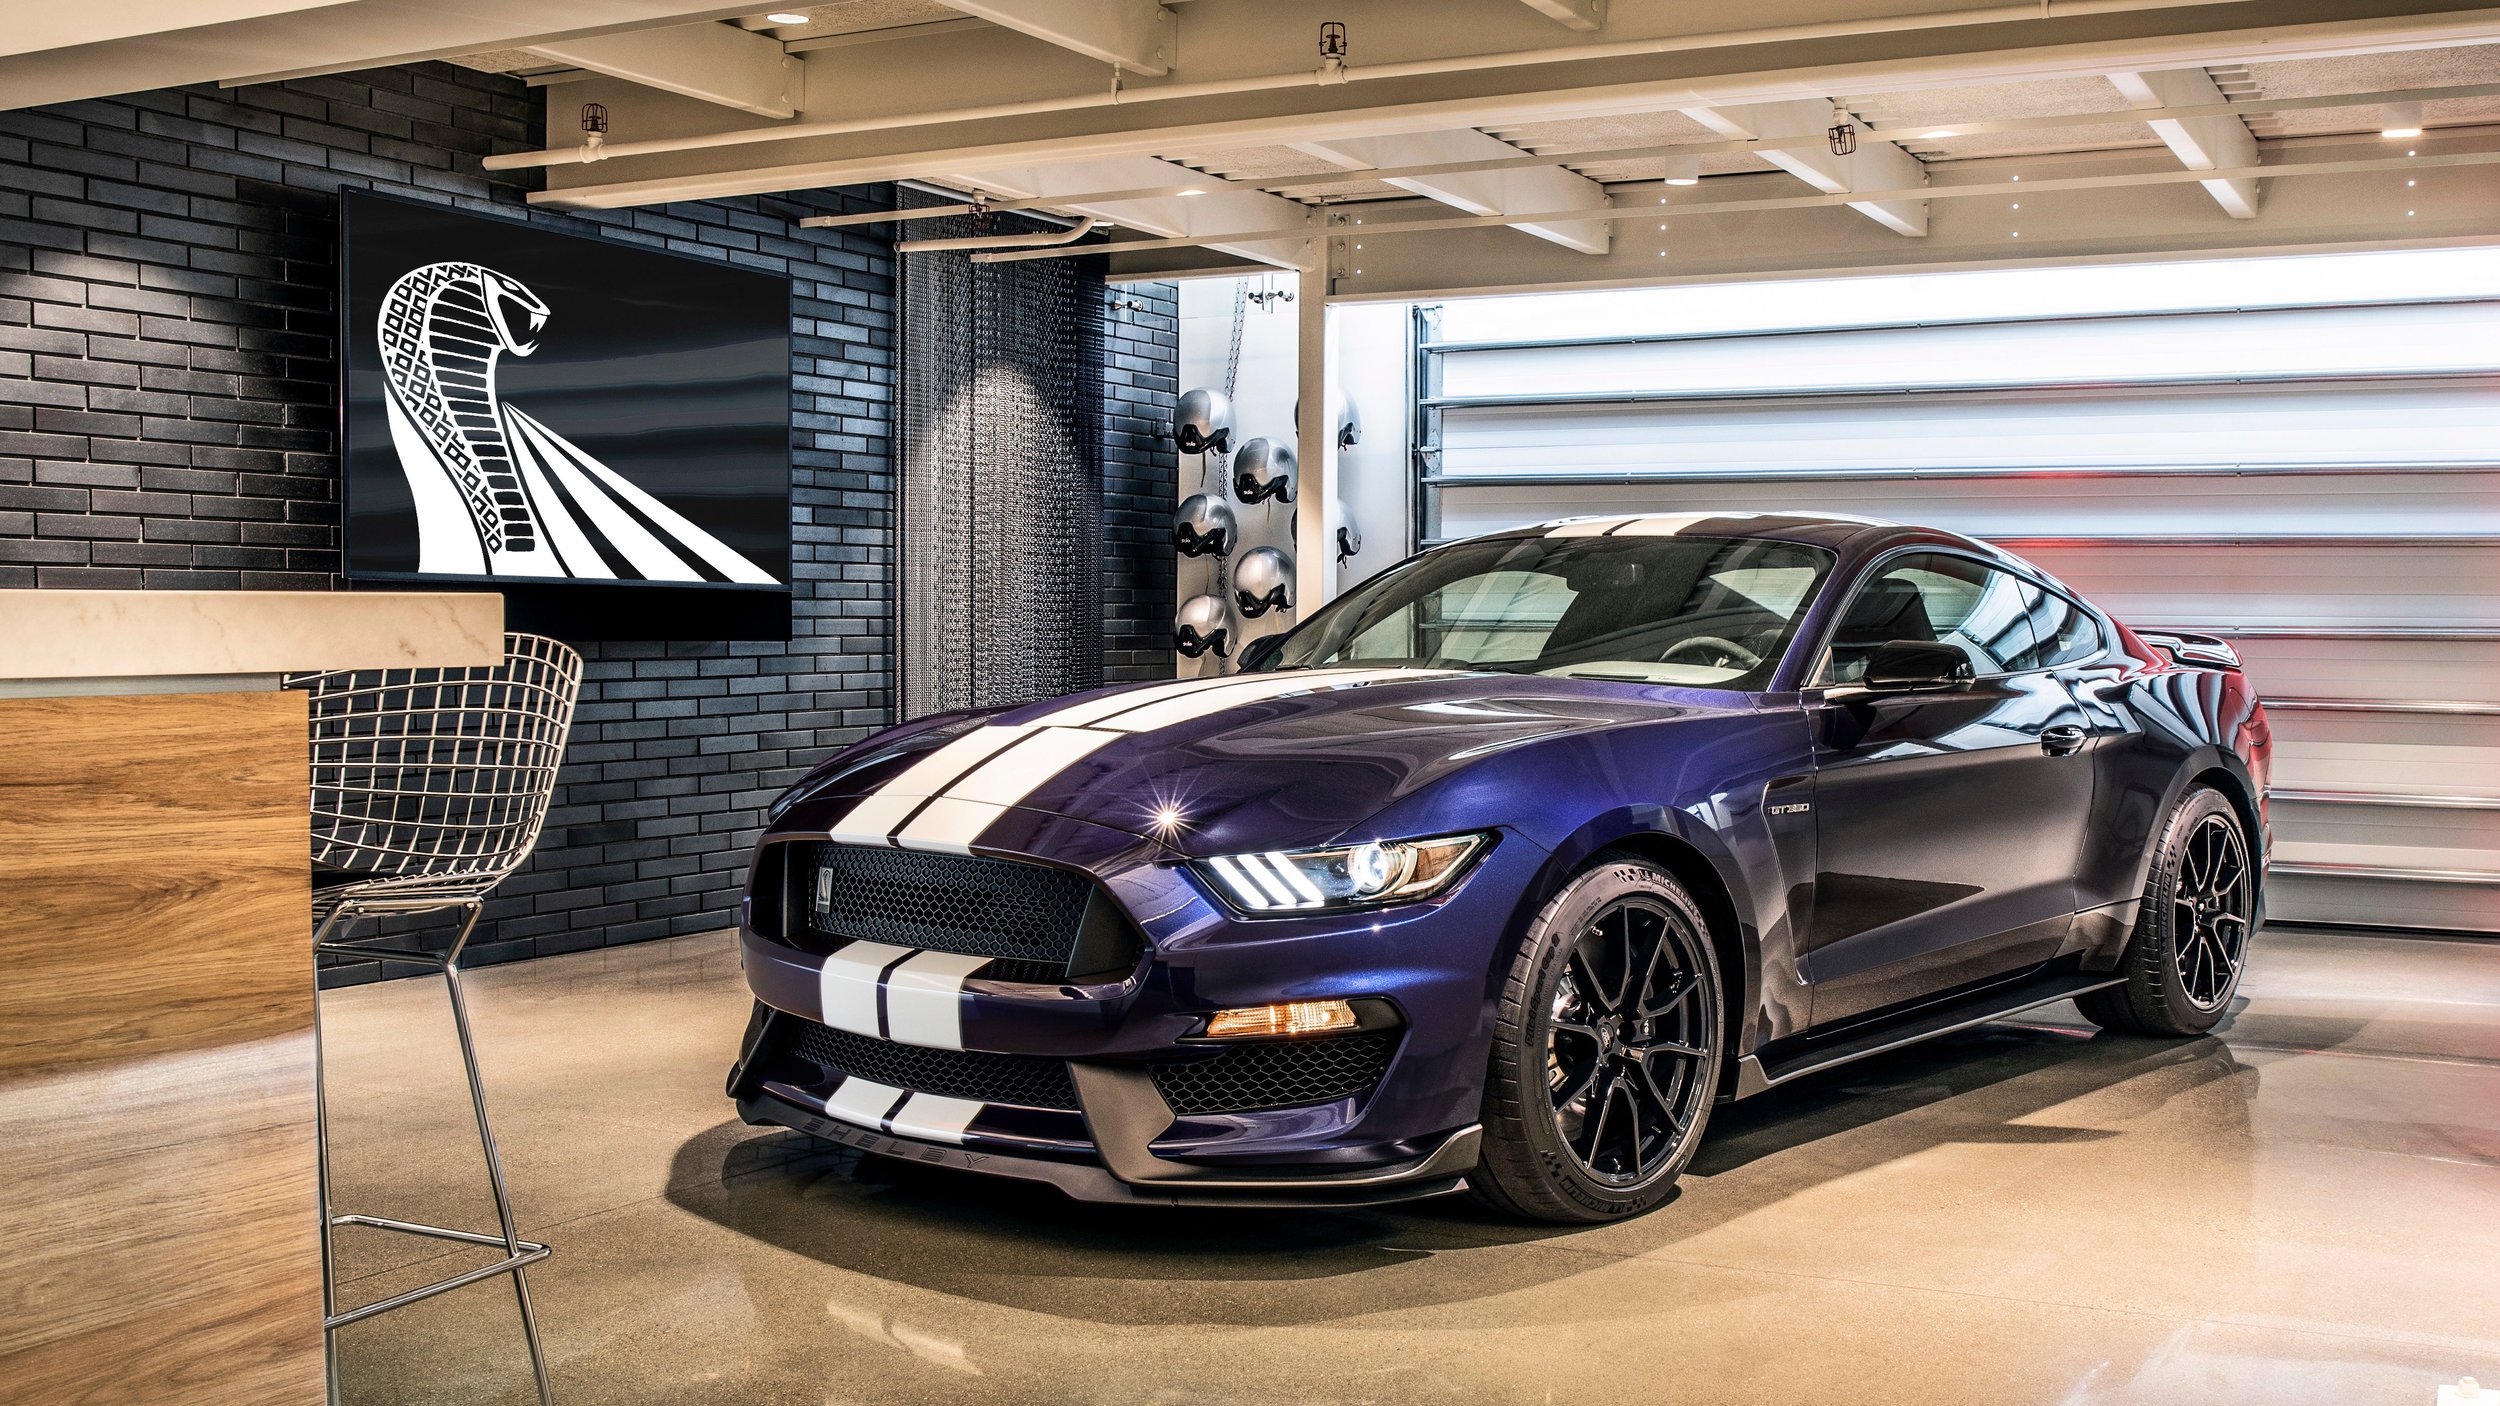 What do you want to know about the 2019 ford mustang shelby gt350